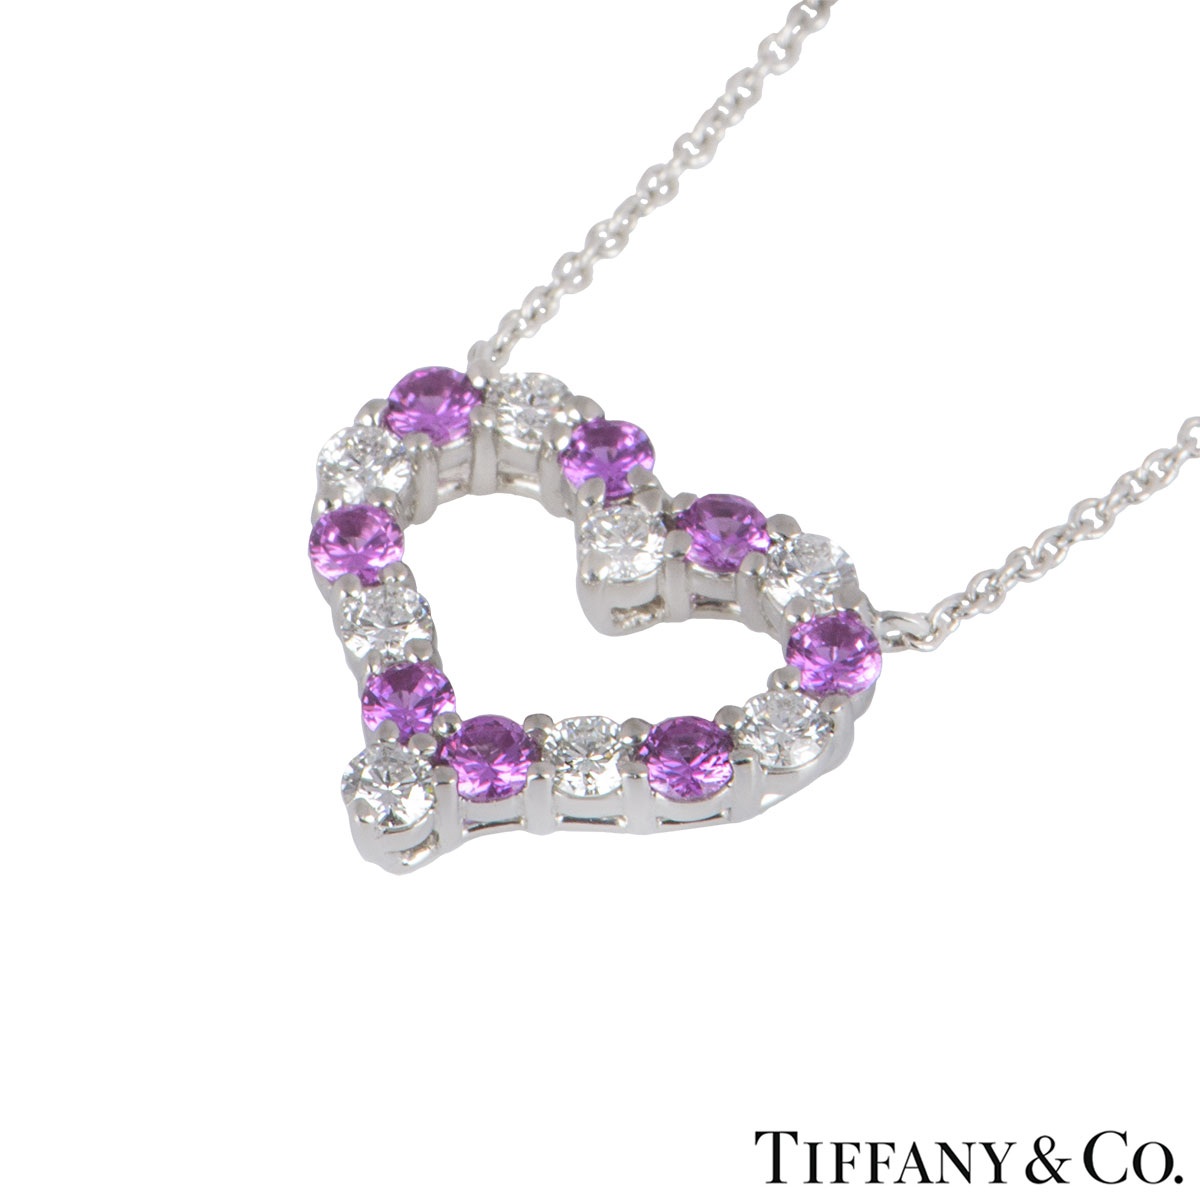 Tiffany & Co. Platinum Diamond & Sapphire Hearts Pendant